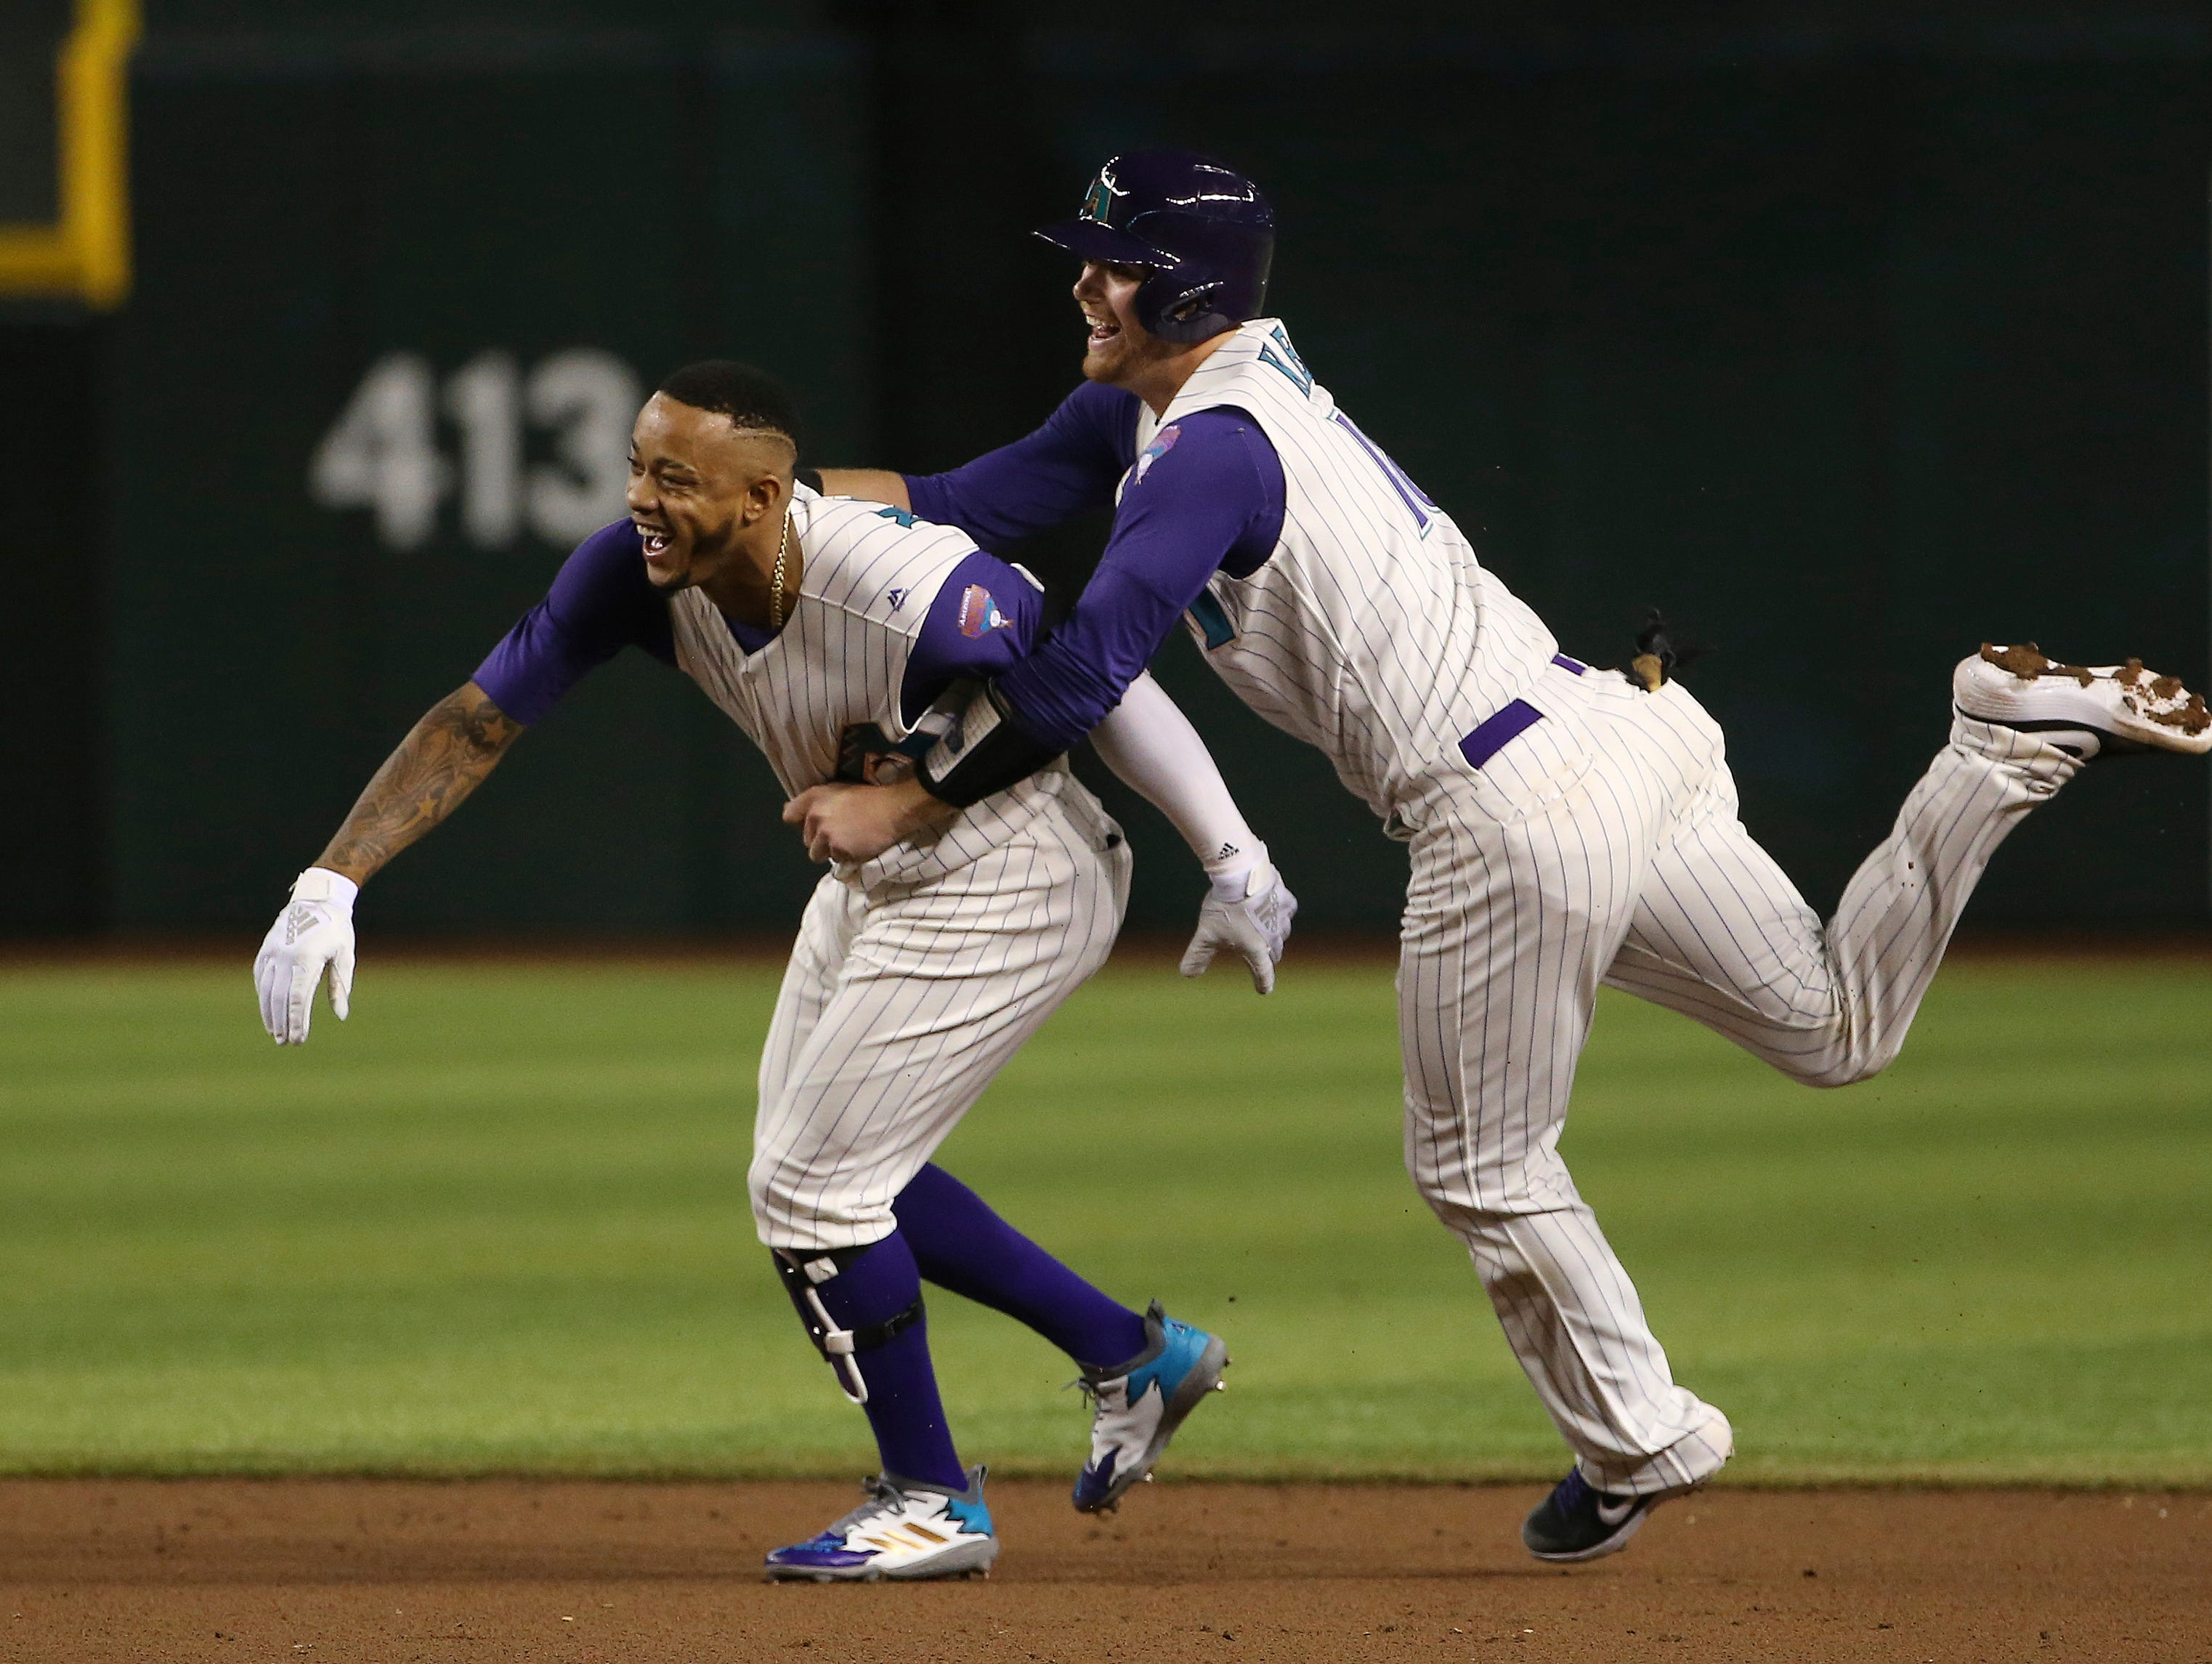 Arizona Diamondbacks' Ketel Marte, left, celebrates his game-winning single against the Atlanta Braves with Carson Kelly, right, during the 10th inning of a baseball game Thursday, May 9, 2019, in Phoenix. The Diamondbacks wopn 3-2. (AP Photo/Ross D. Franklin)